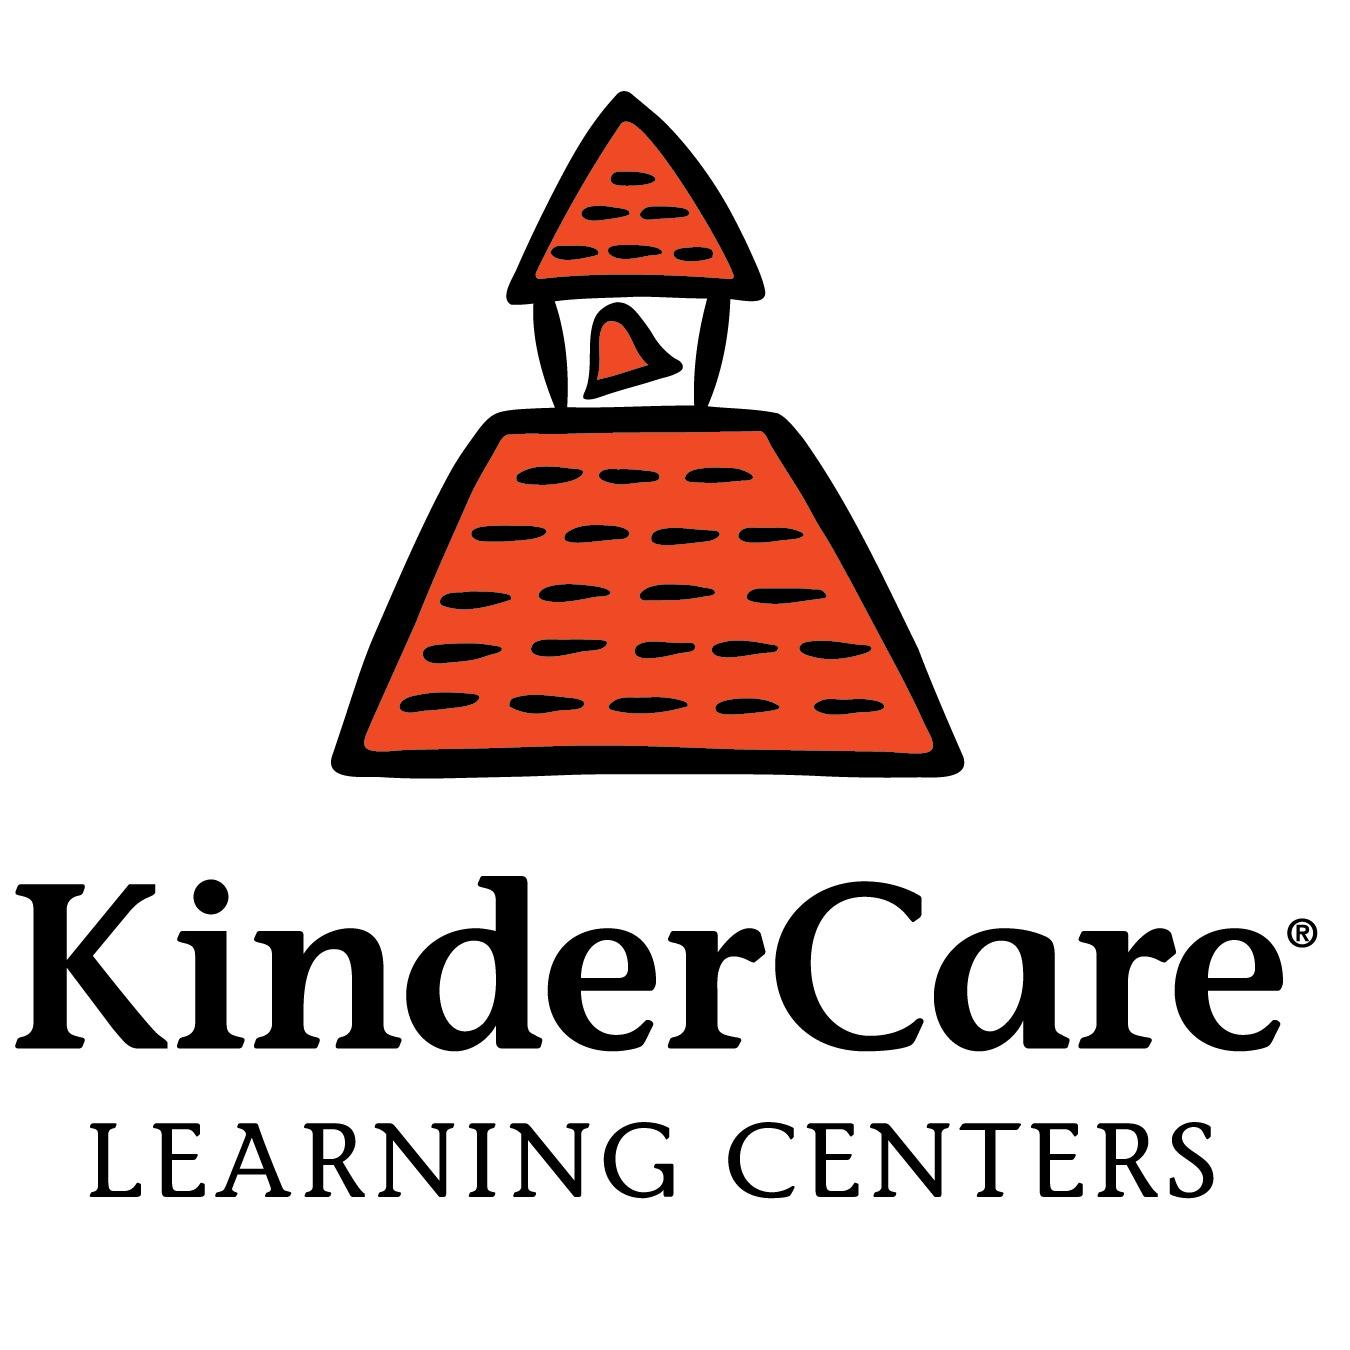 Riverdale KinderCare